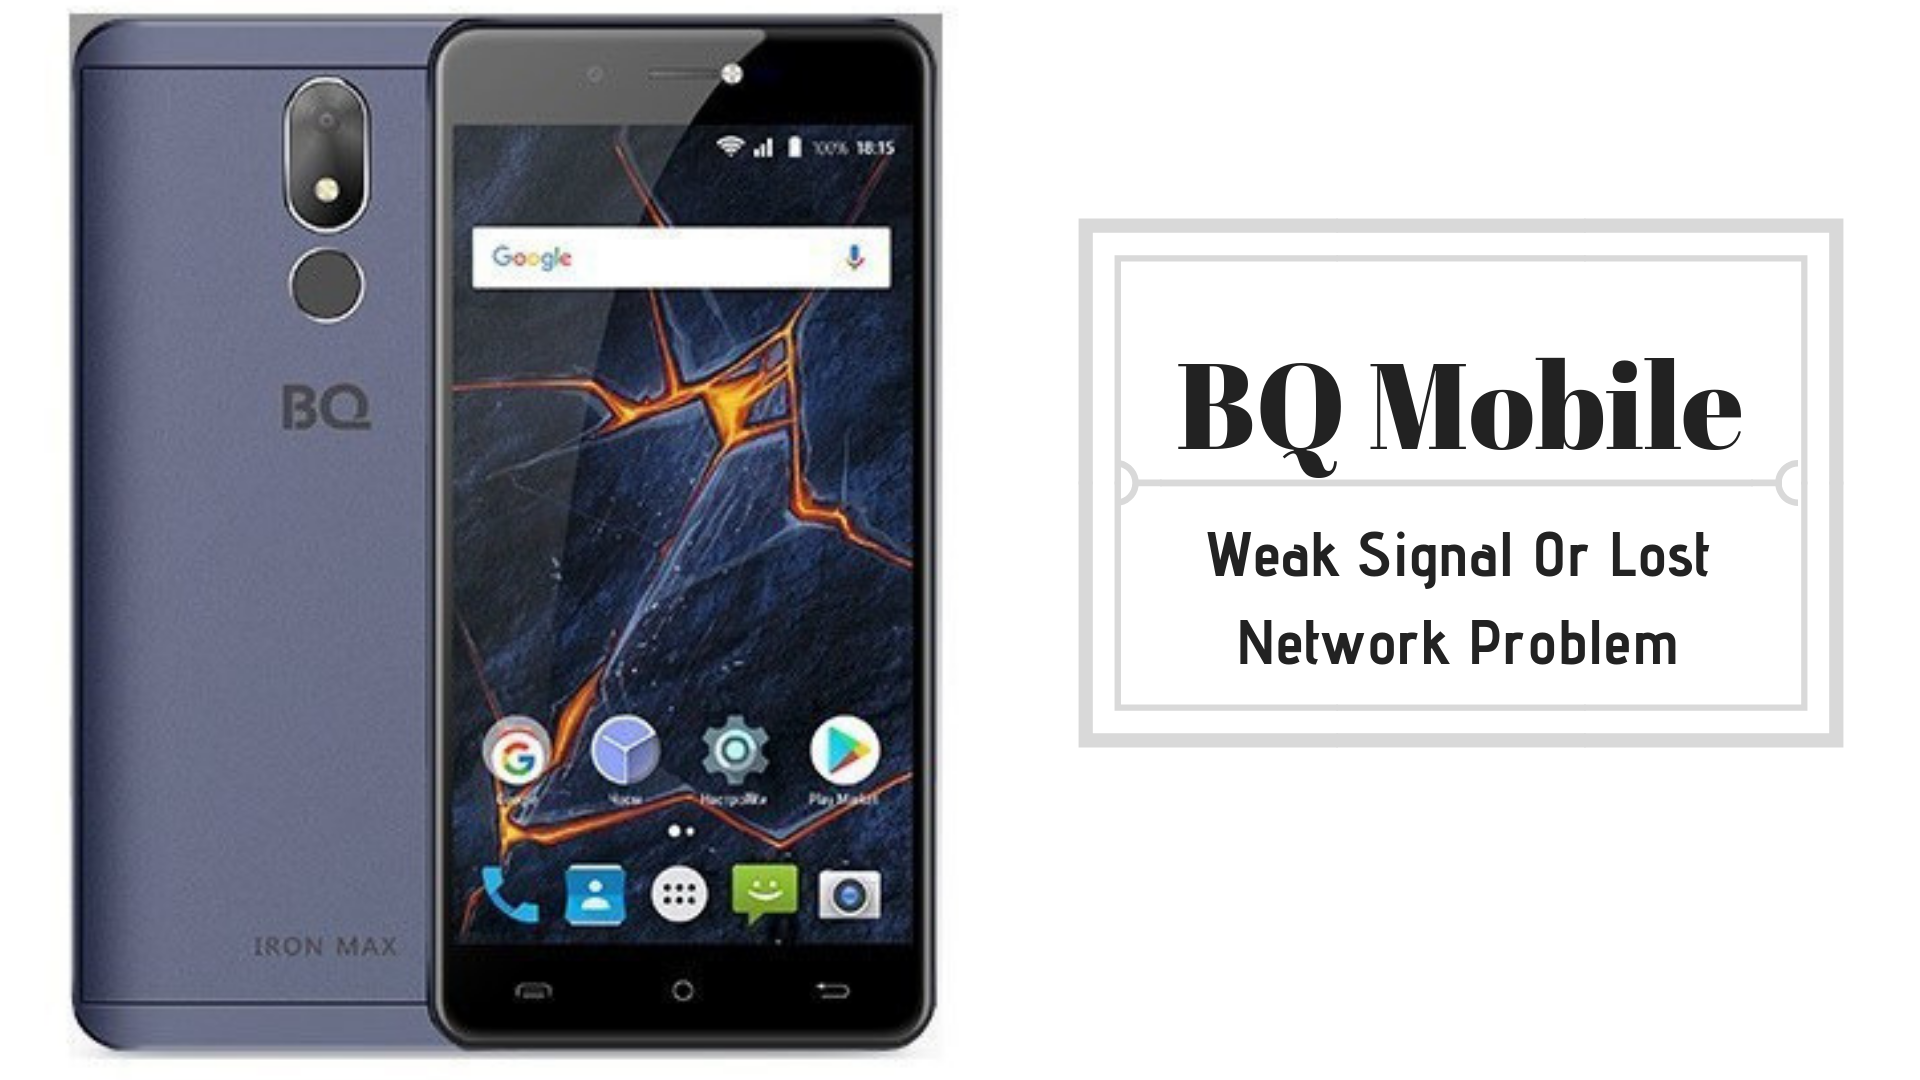 Guide To Fix BQ Mobile Weak Signal Or Lost Network Issue